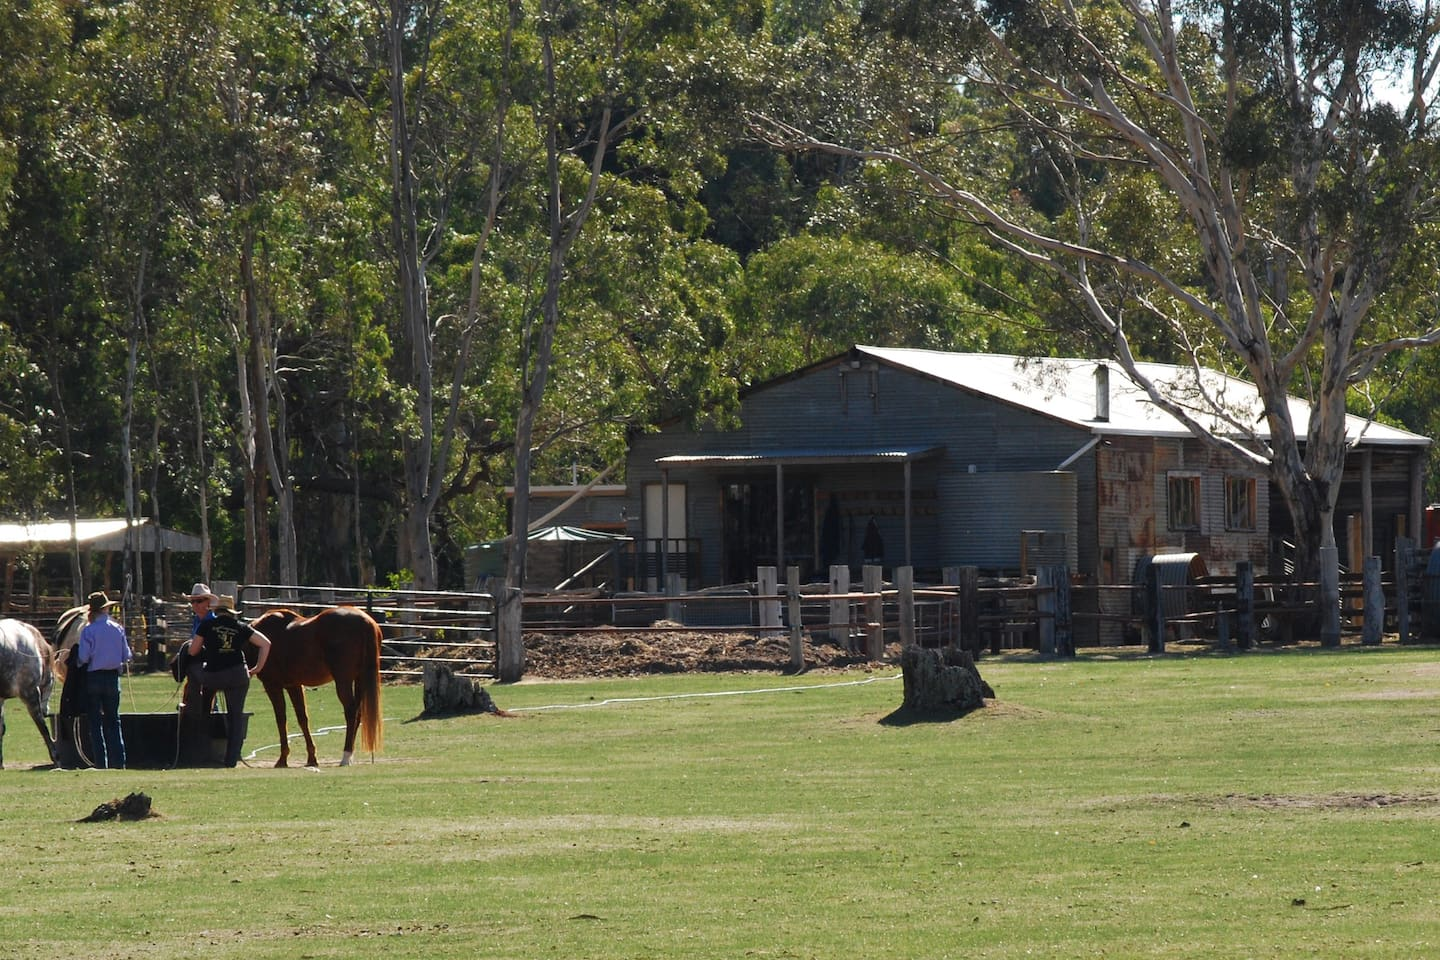 Woolshed facilities available for campers and/or B&B guests - fully equipped kitchen/dining/BBQ/woodfireshowers/toilets/wash up area